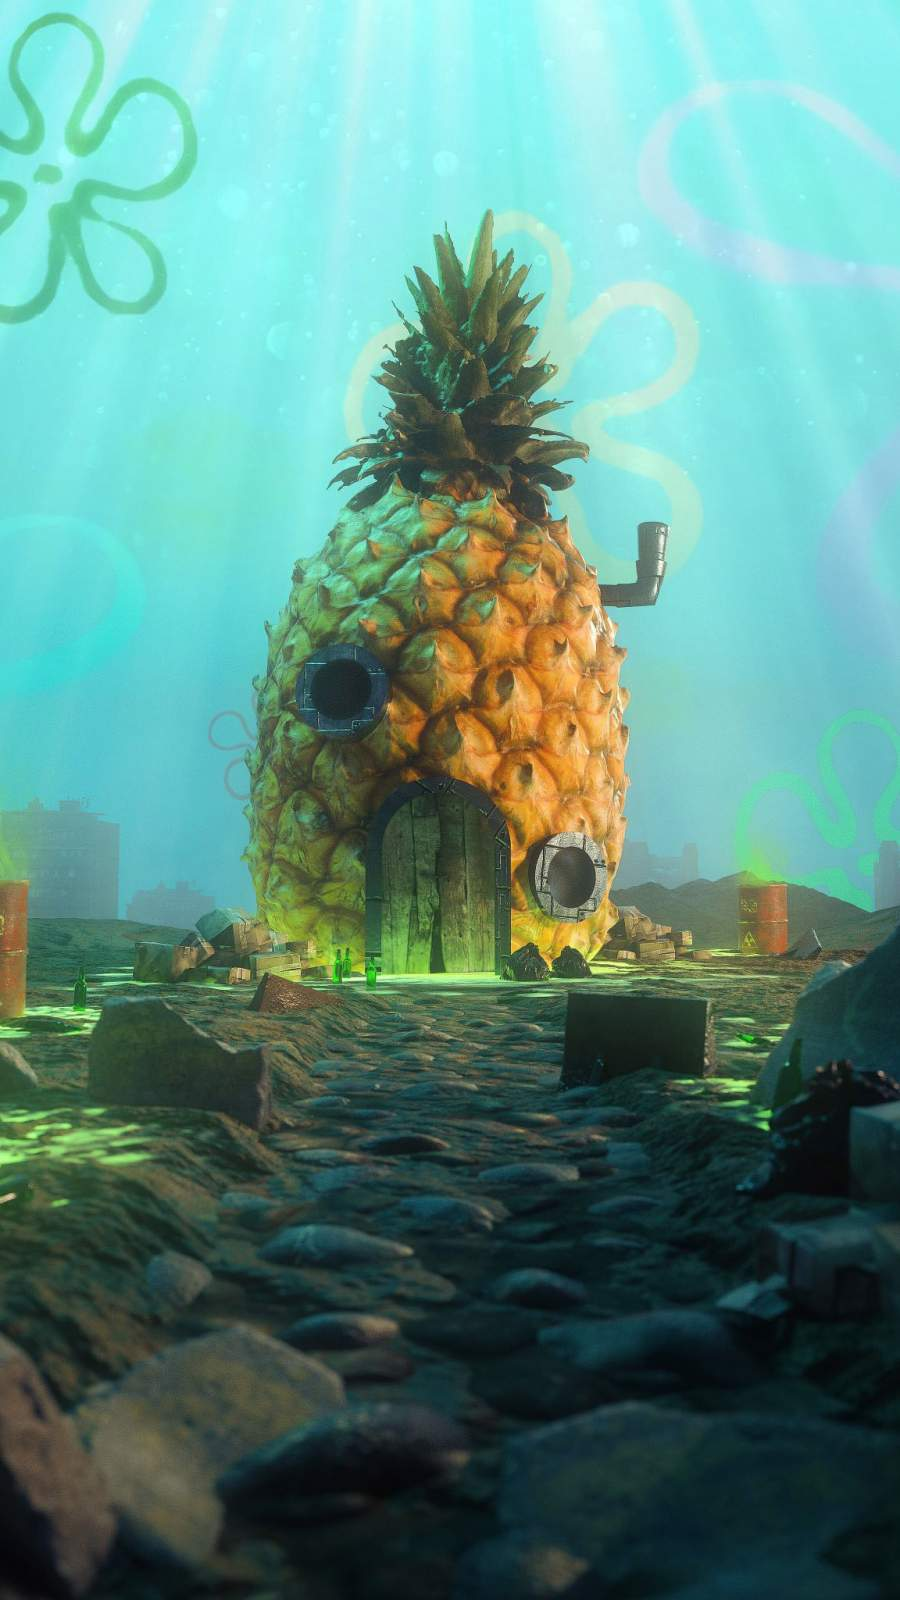 Spongebob House iPhone Wallpaper